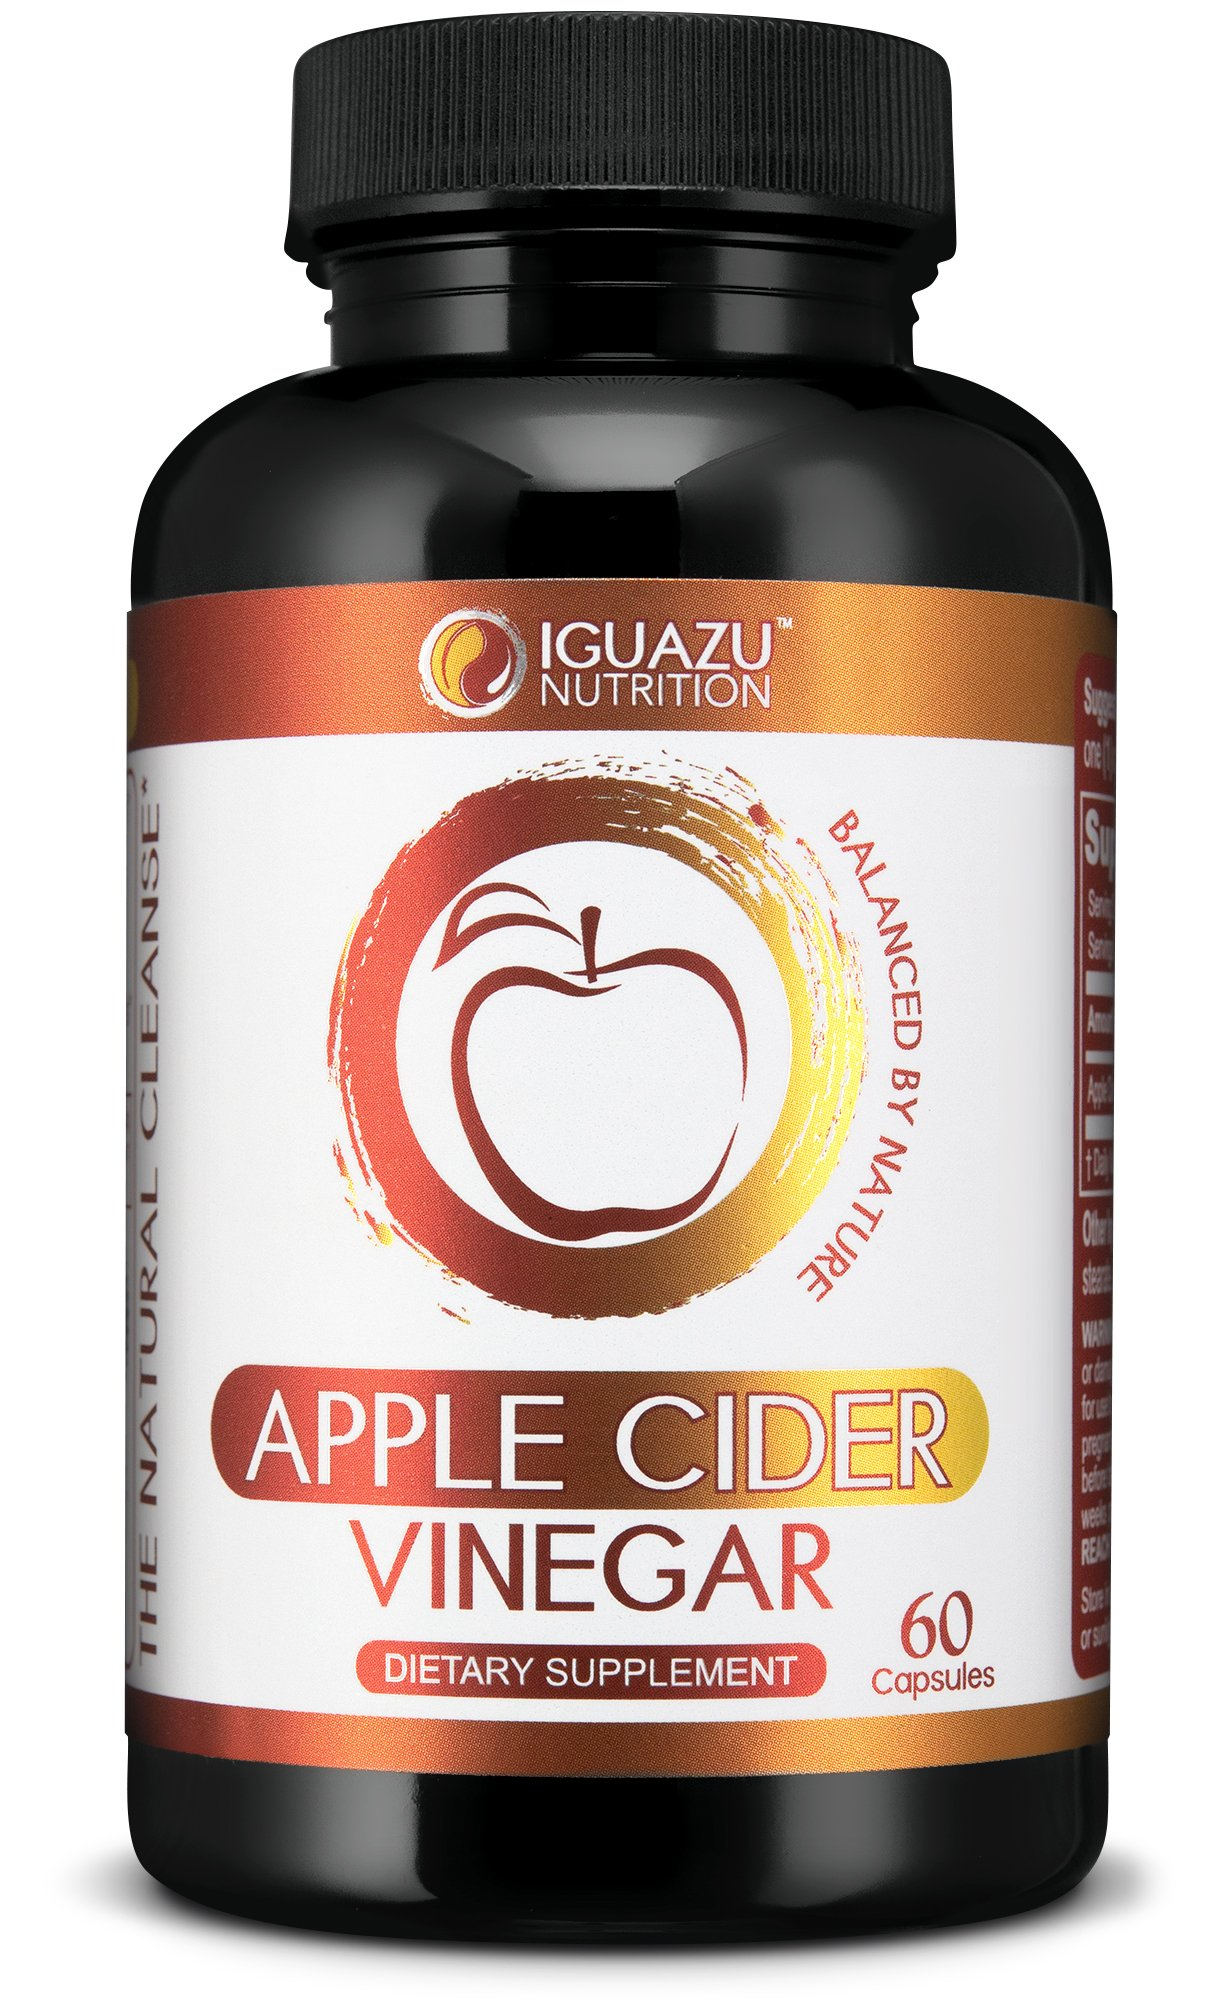 Extra Strength Apple Cider Vinegar Capsules - Natural Cleanser Supports Weight Loss, Healthy Blood Sugar & Cholesterol Levels, Boosts Energy & Metabolism, With the Mother Raw Non-GMO, 500mg Pills by Iguazu Nutrition